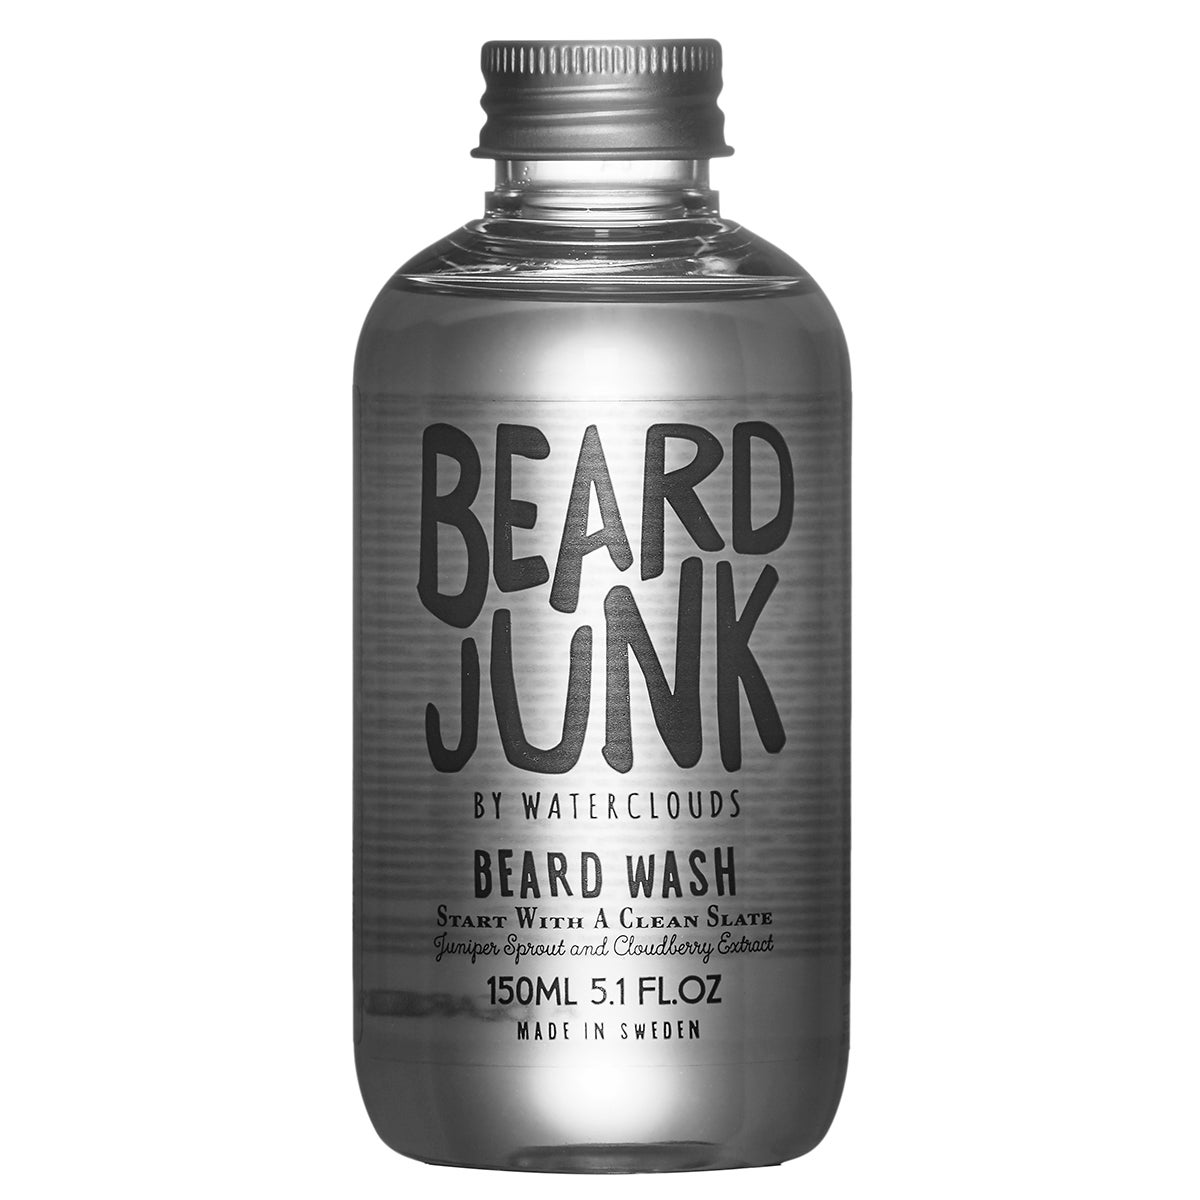 Beard Junk Beard Wash,  150 ml Beard Junk by Waterclouds Skägg  Mustasch